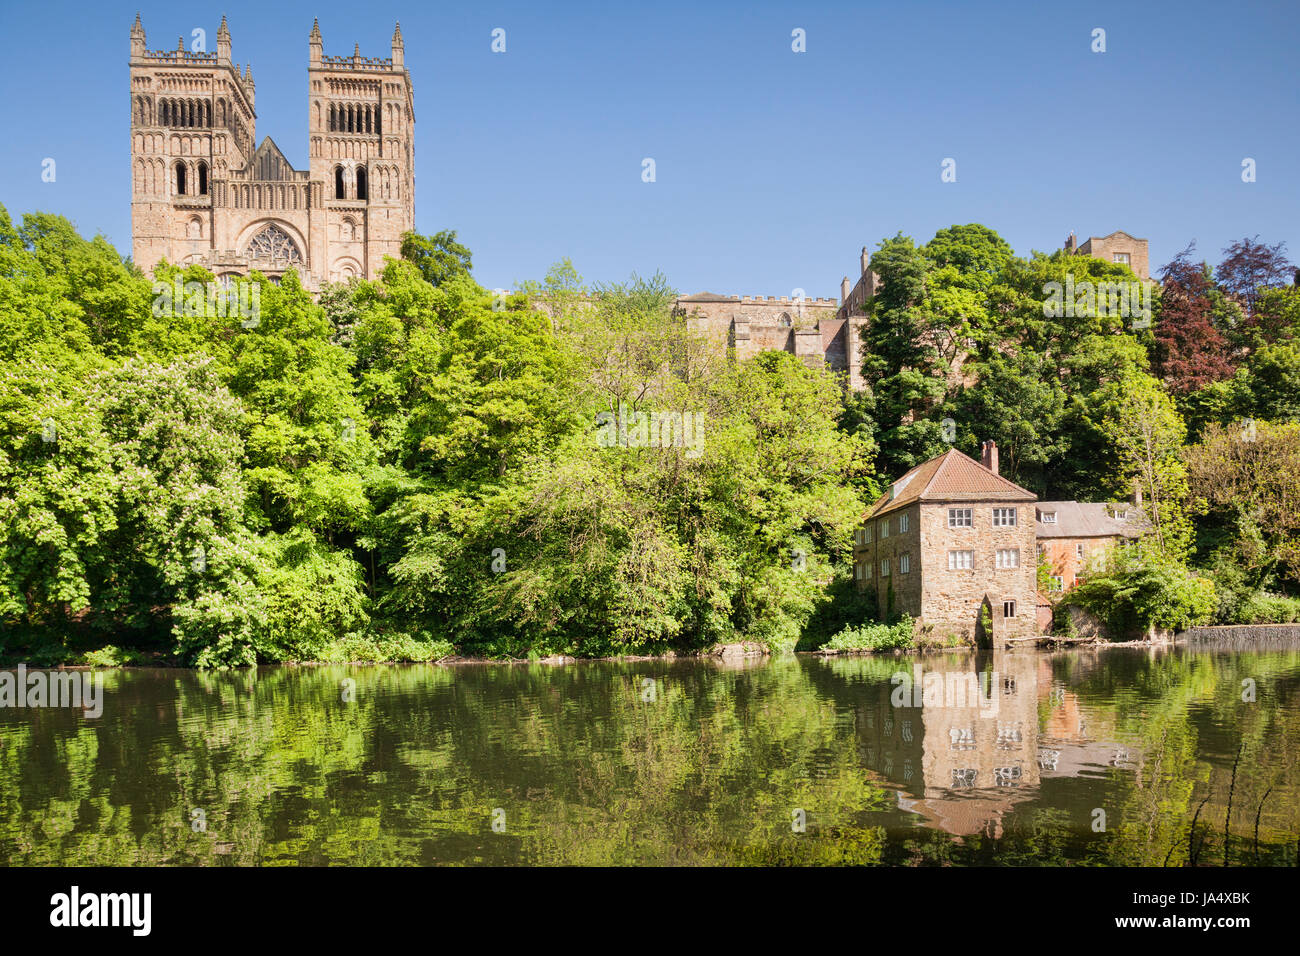 Durham Cathedral, the Old Fulling Mill, now an archaeological museum, and the River Wear, County Durham, England, - Stock Image